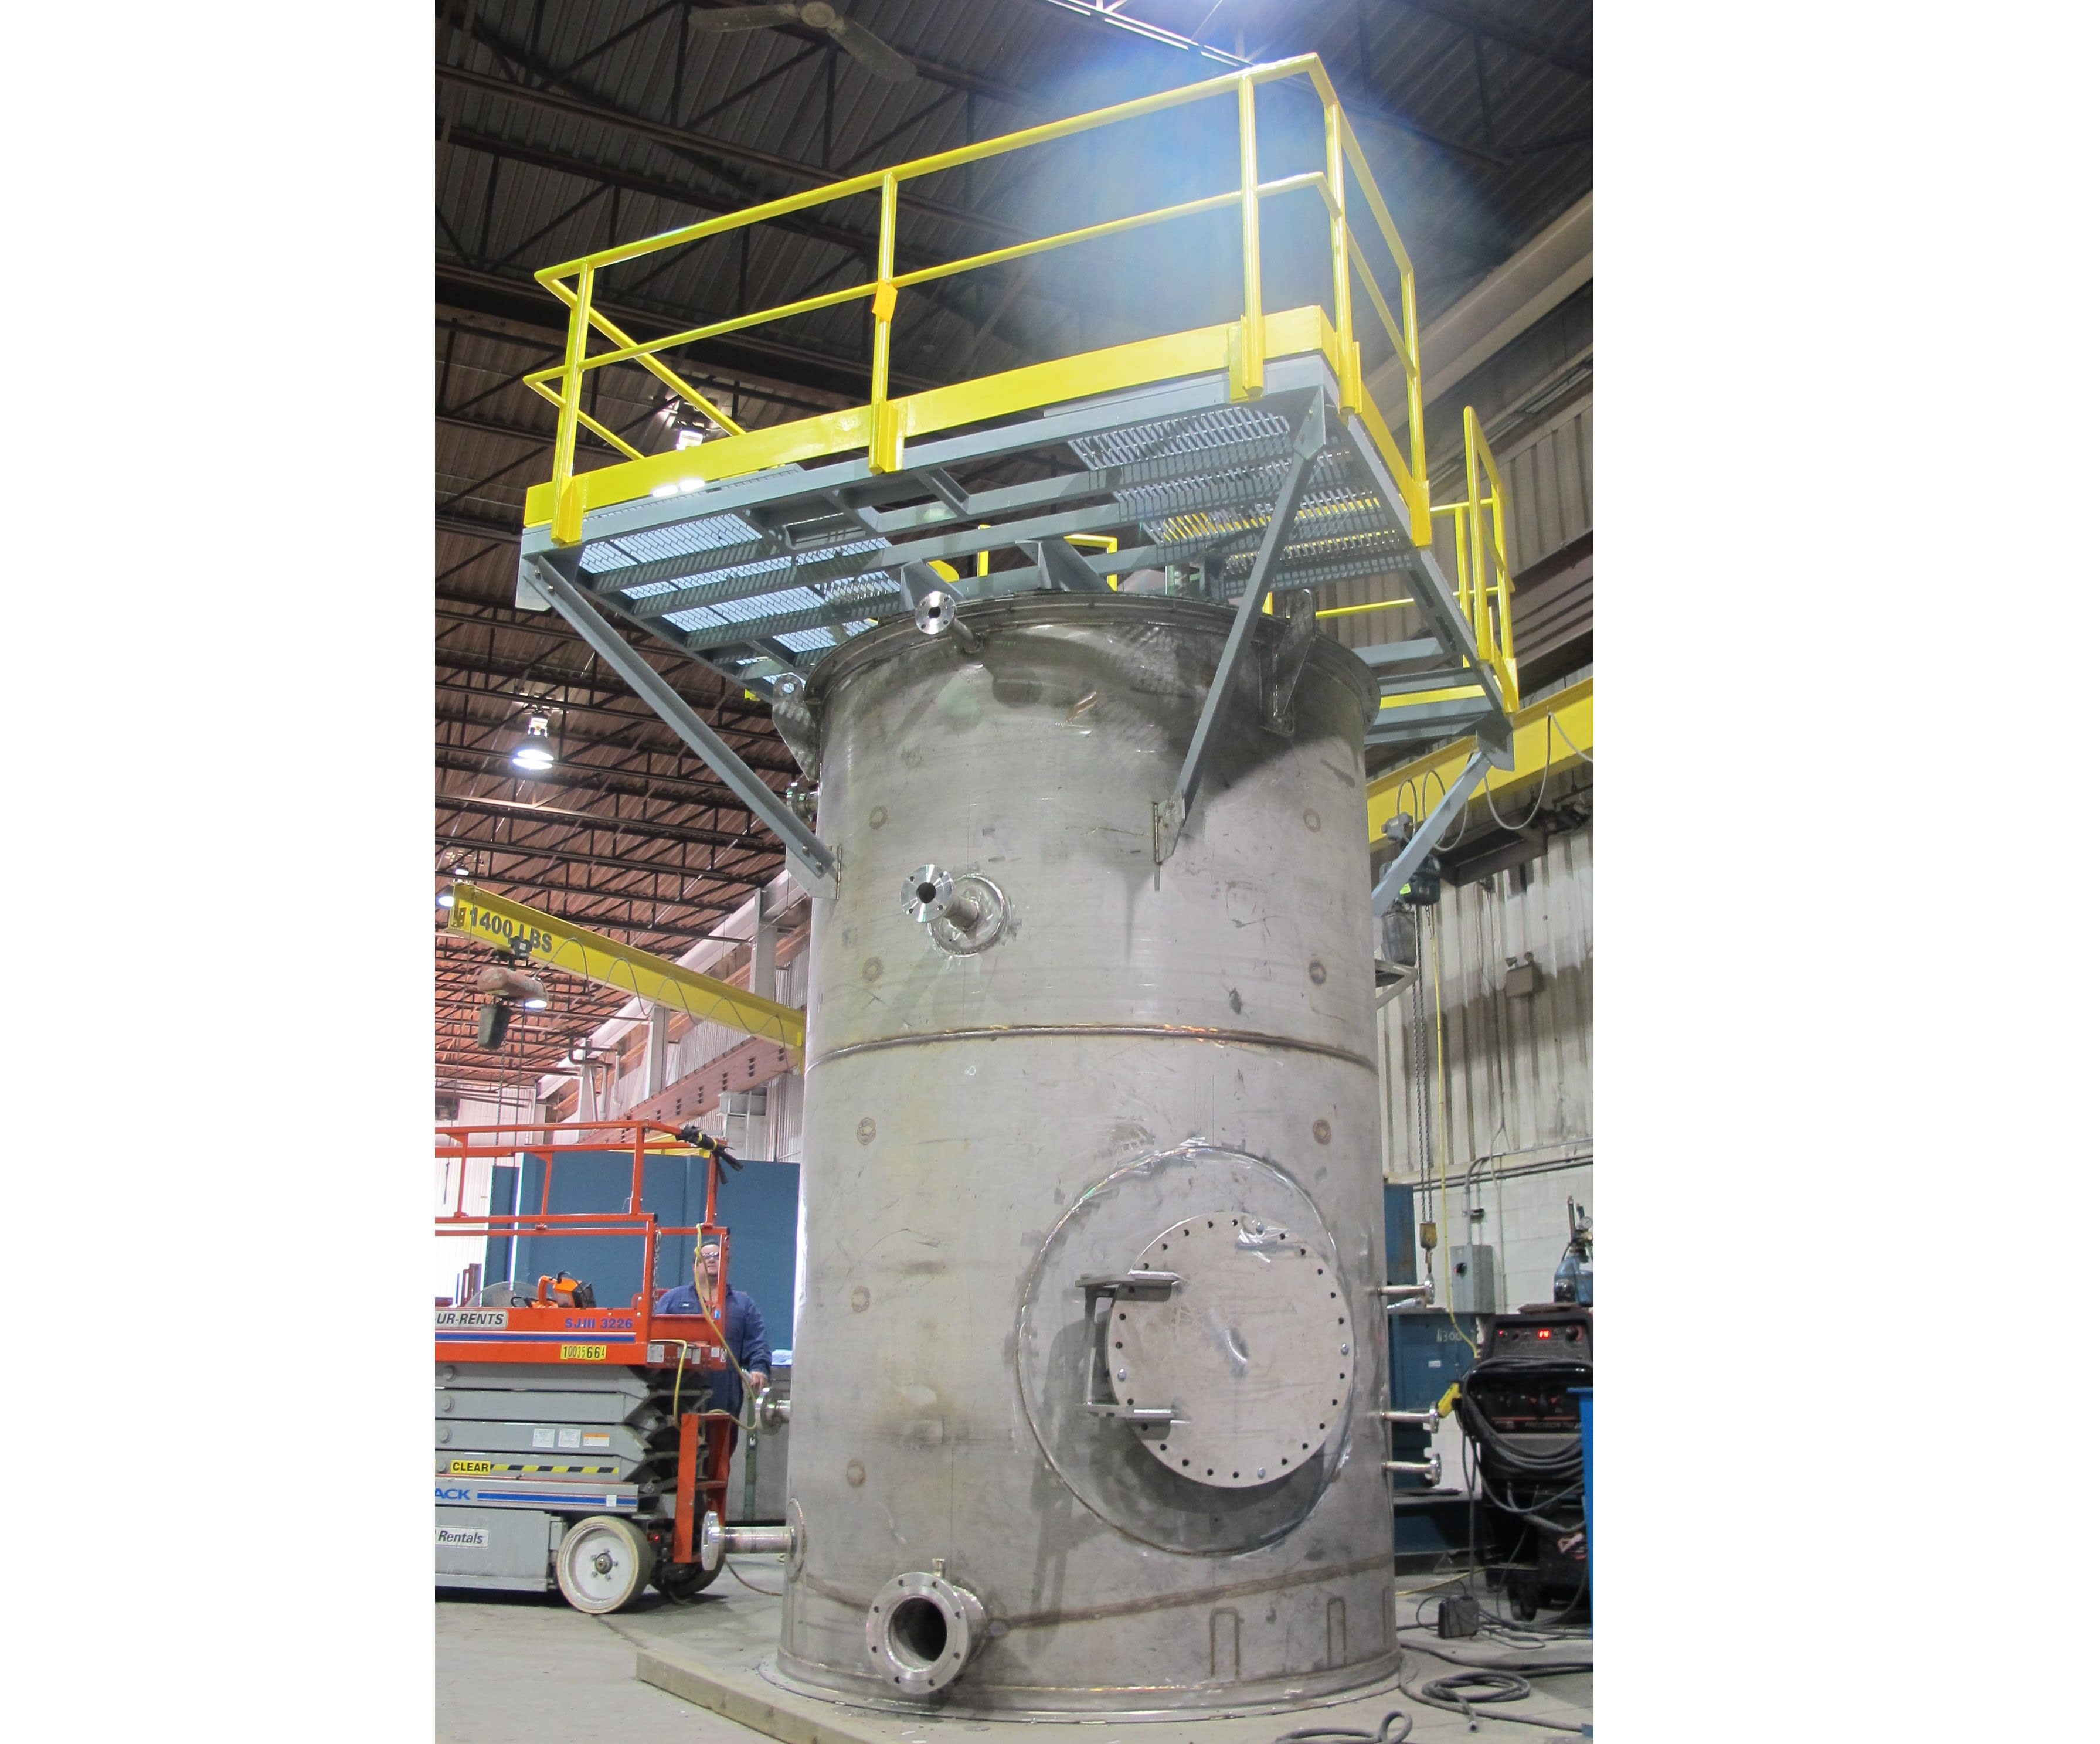 API Tanks | Steelcraft Inc. | Provider of Steel Products and OEM Manufacturing in Ontario